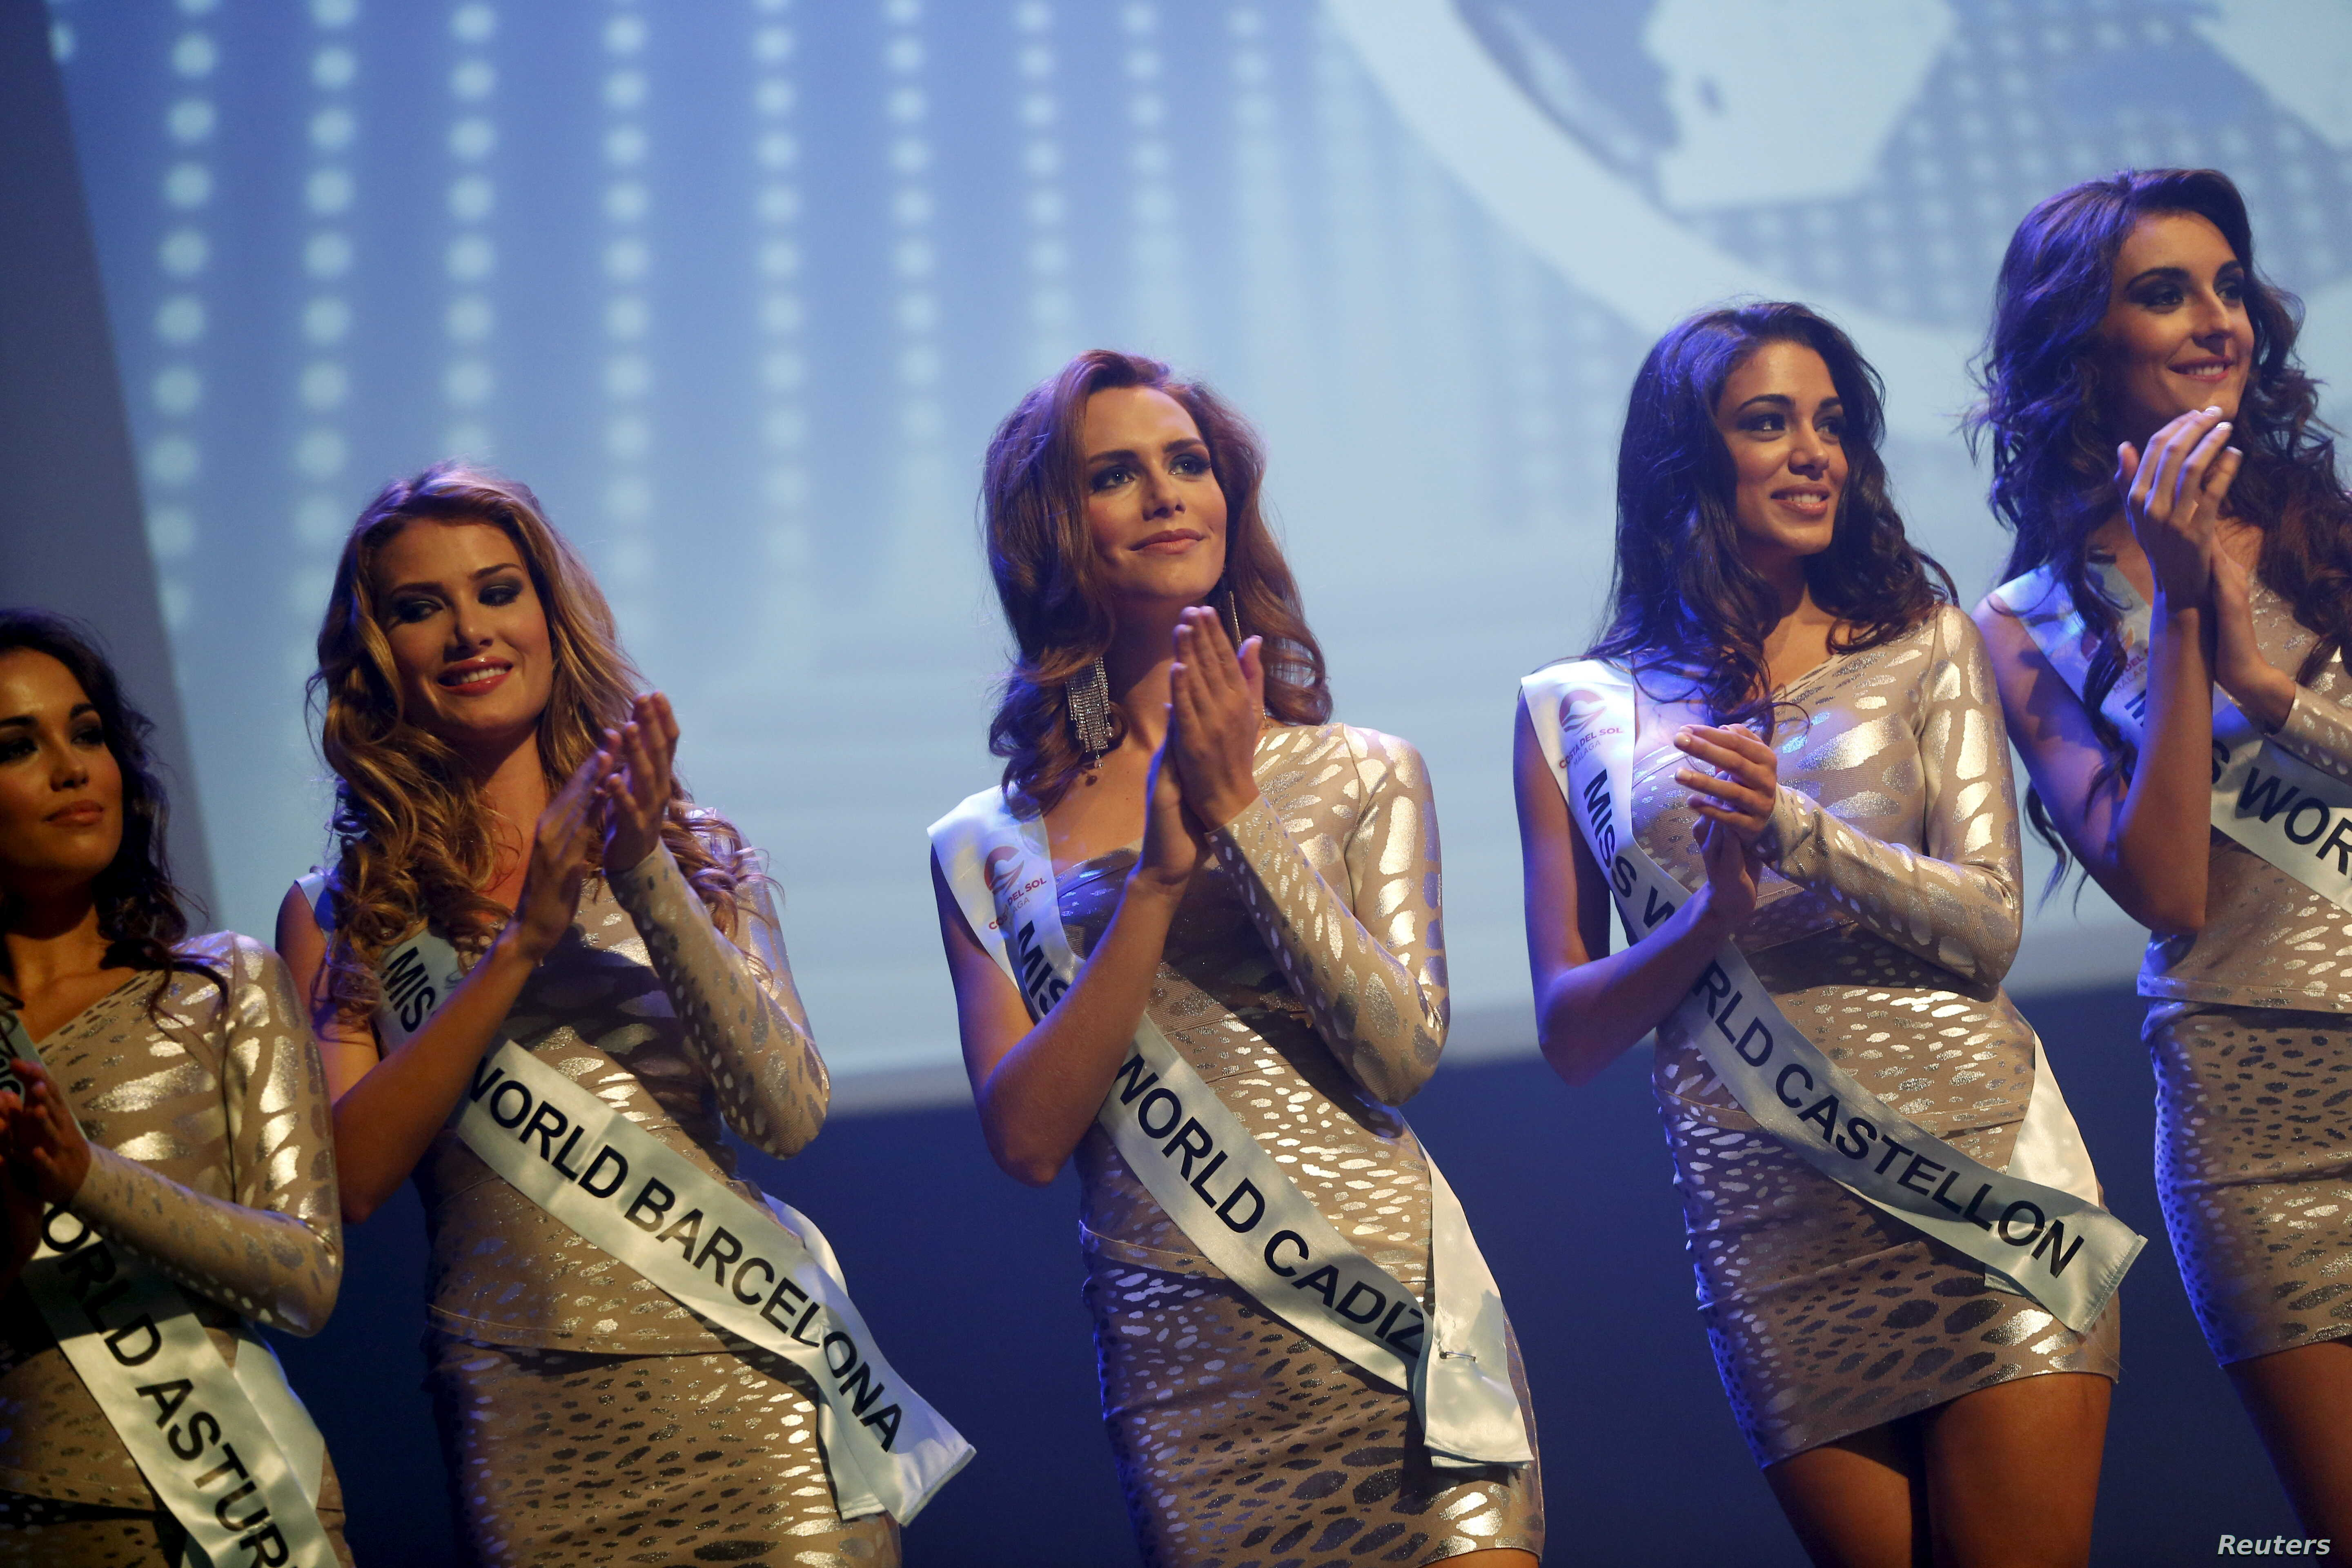 FILE - Angela Ponce, 24, center, competes in the Miss World Spain pageant in Estepona, southern Spain, Oct. 25, 2015. Ponce, the first openly transsexual woman to compete to represent Spain at the Miss World pageant, was eliminated in the first knock...